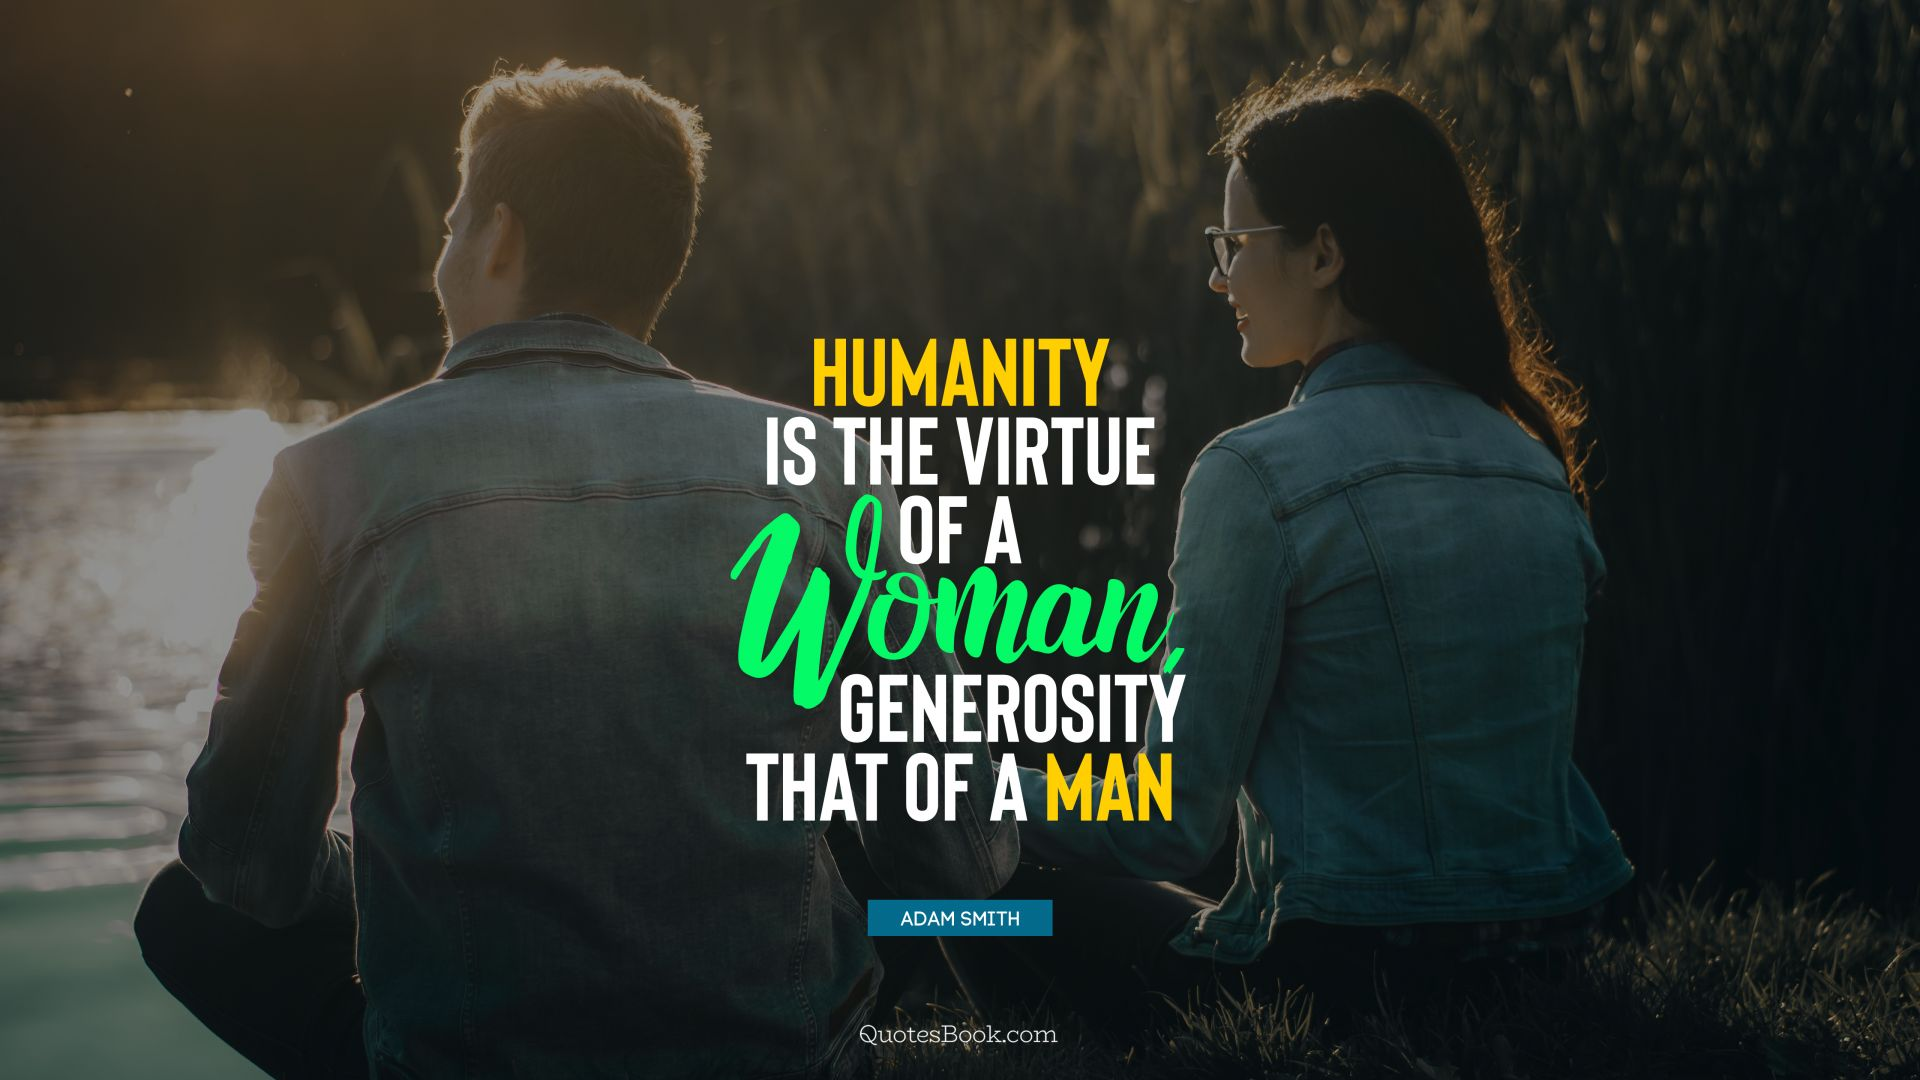 Humanity is the virtue of a woman, generosity that of a man. - Quote by Adam Smith